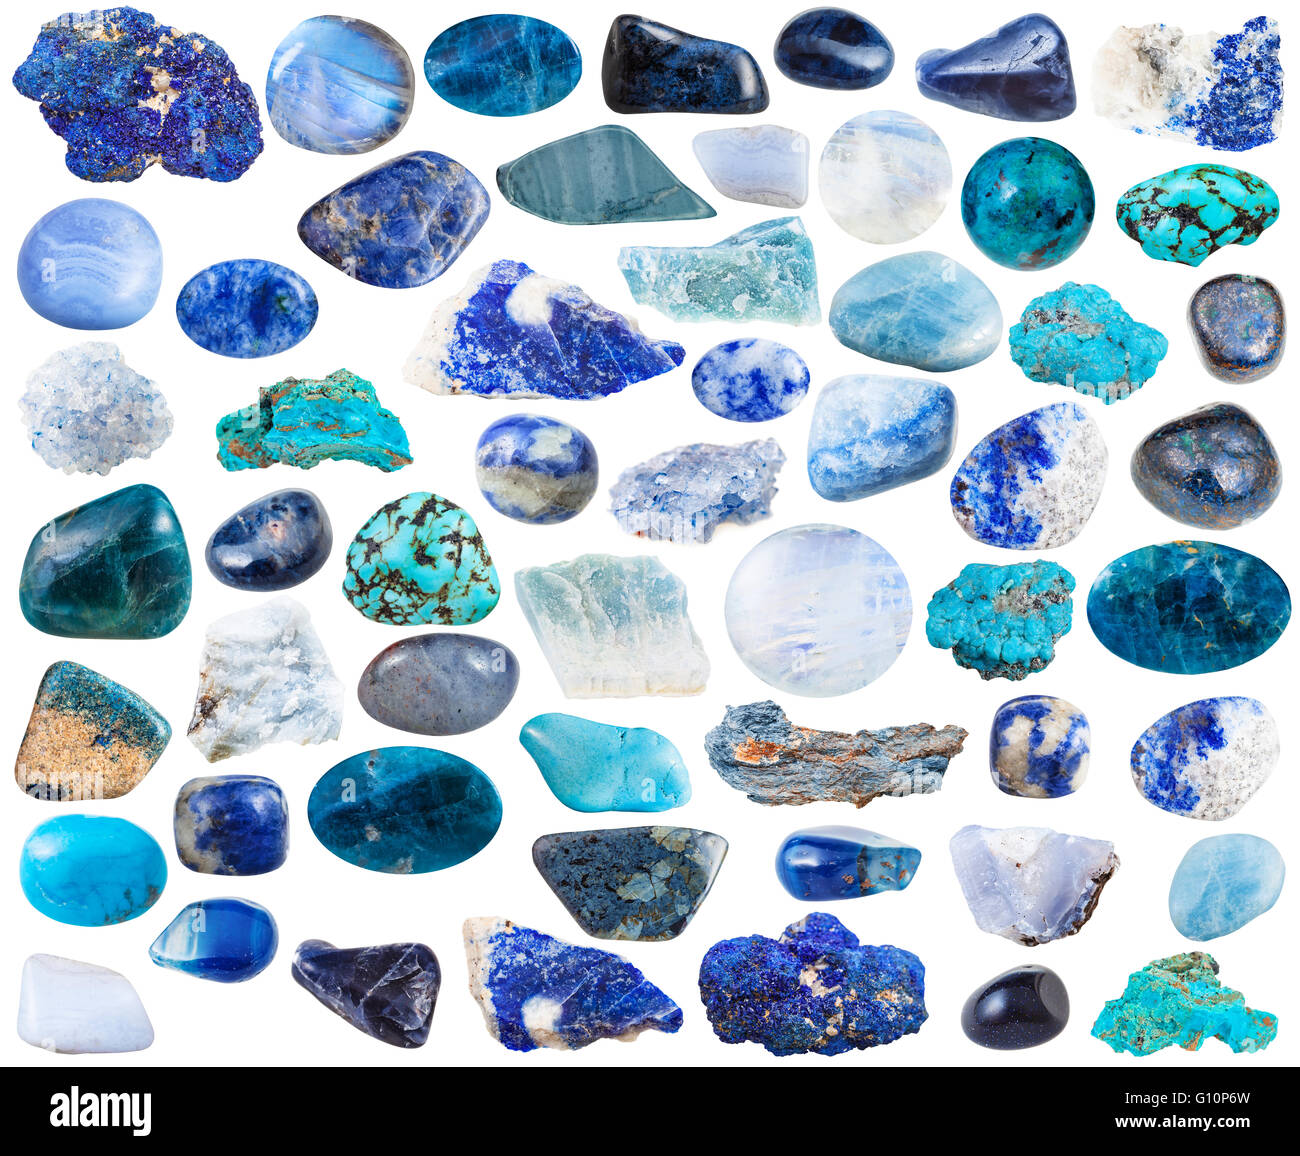 set of blue natural mineral stones and gemstones isolated on white background - Stock Image